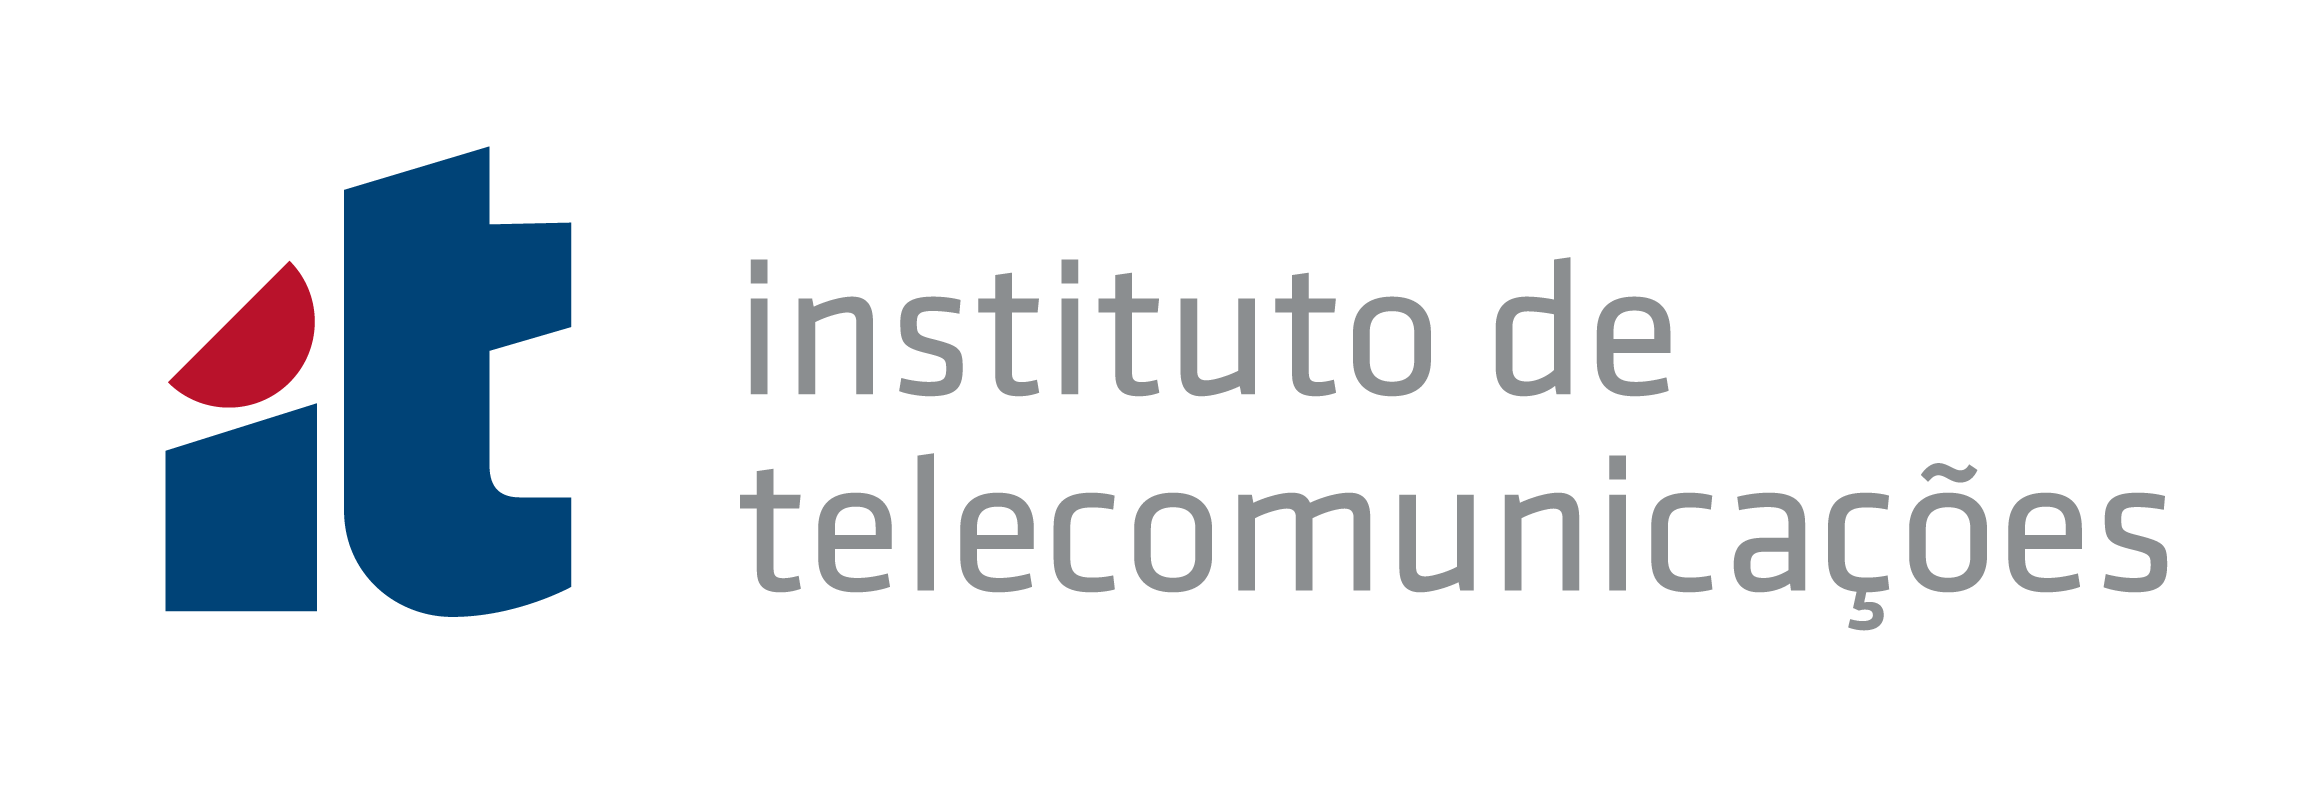 IT - instituto de Telecomunicações